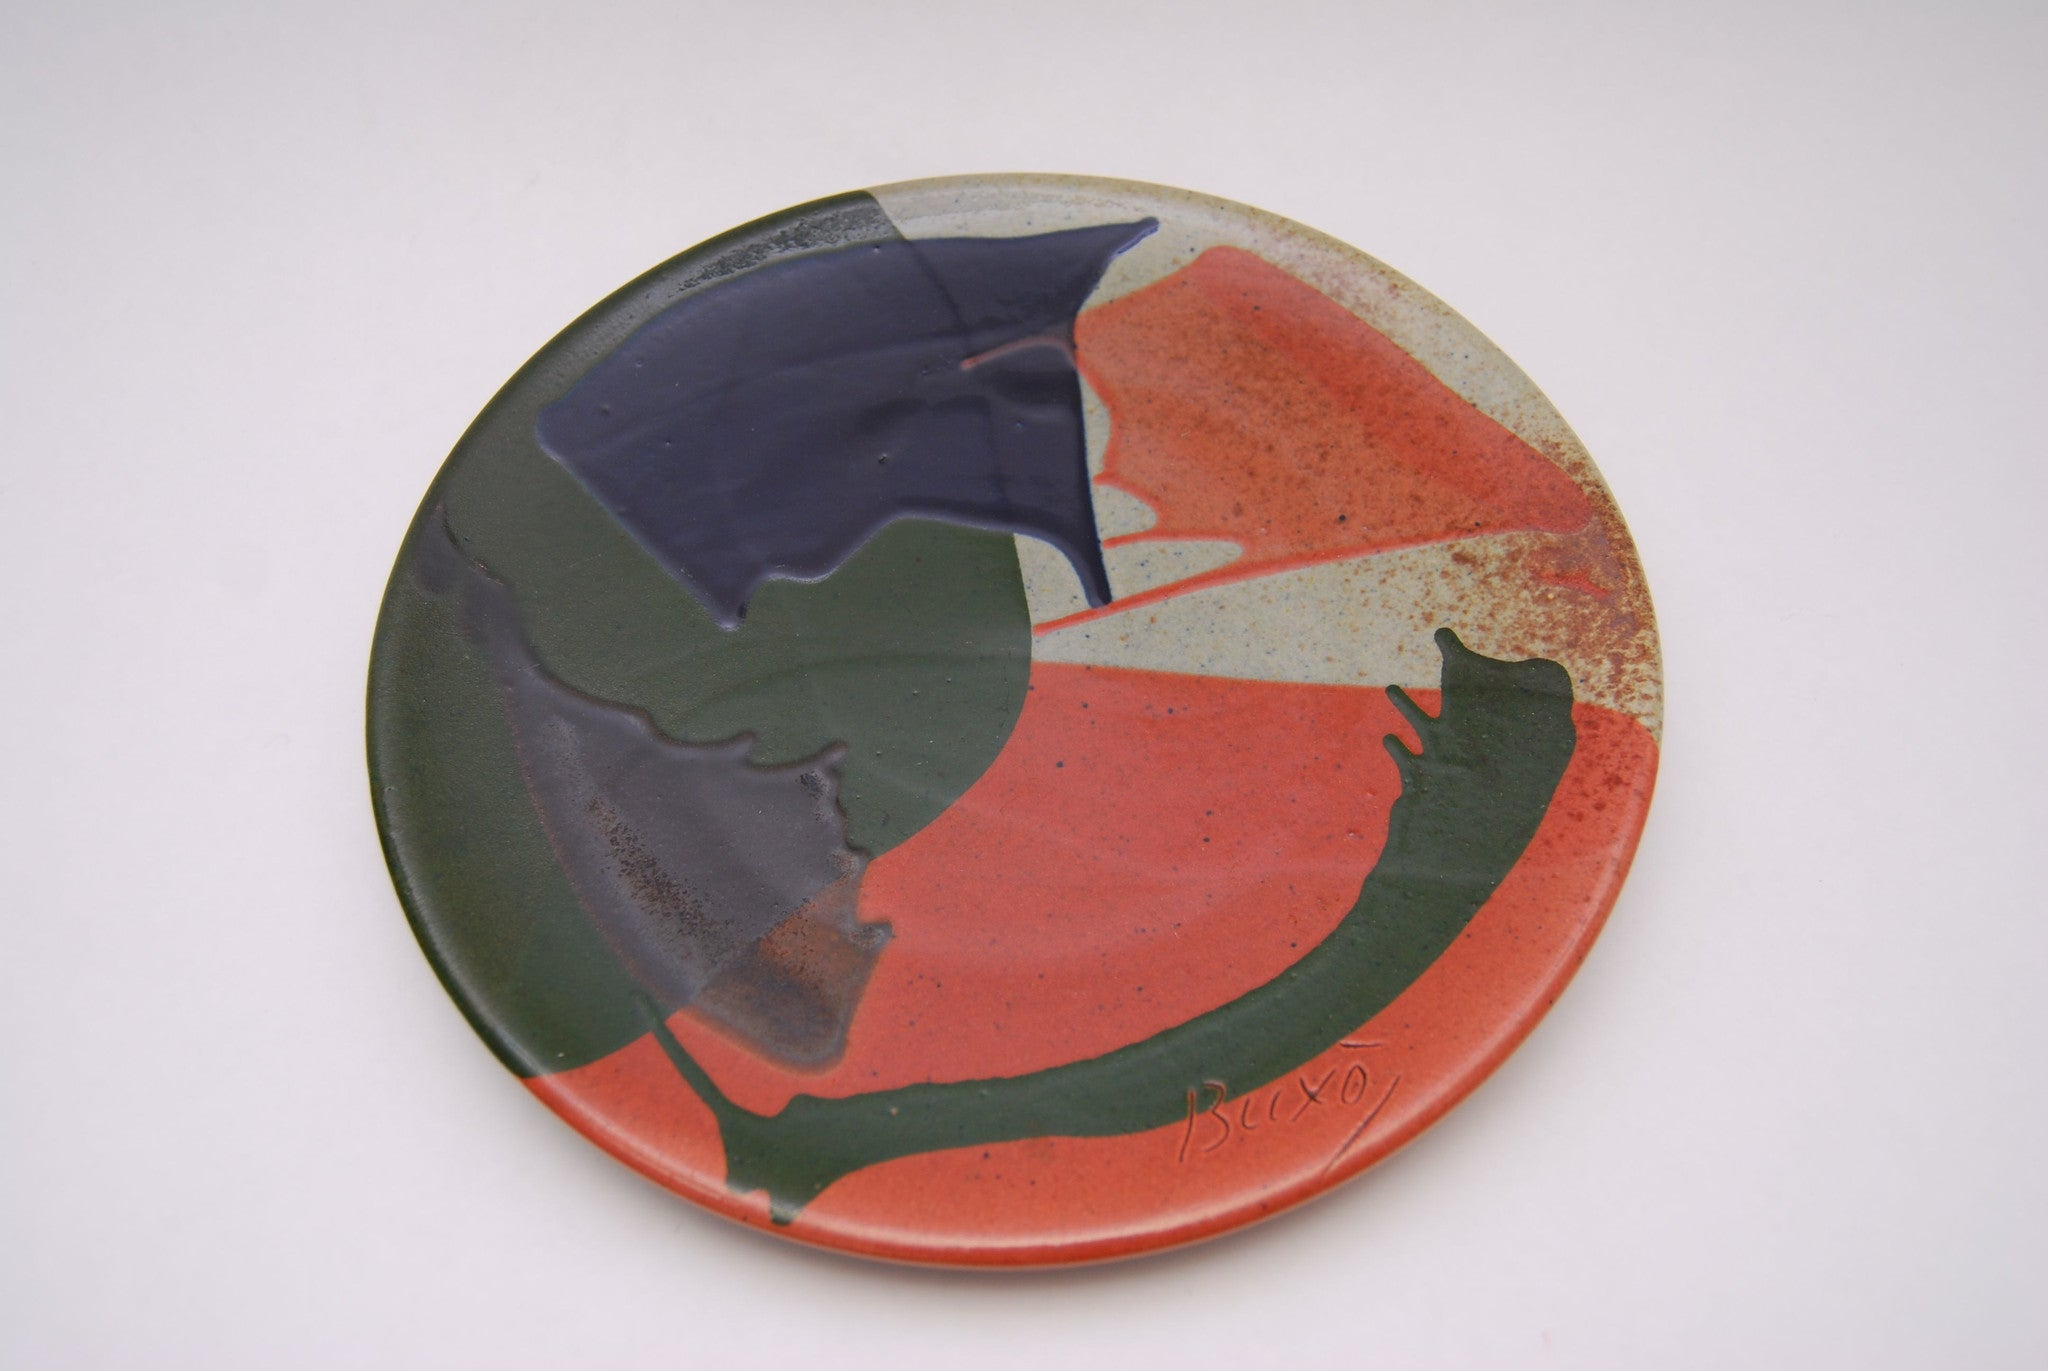 Decorative wall plate by Buxo